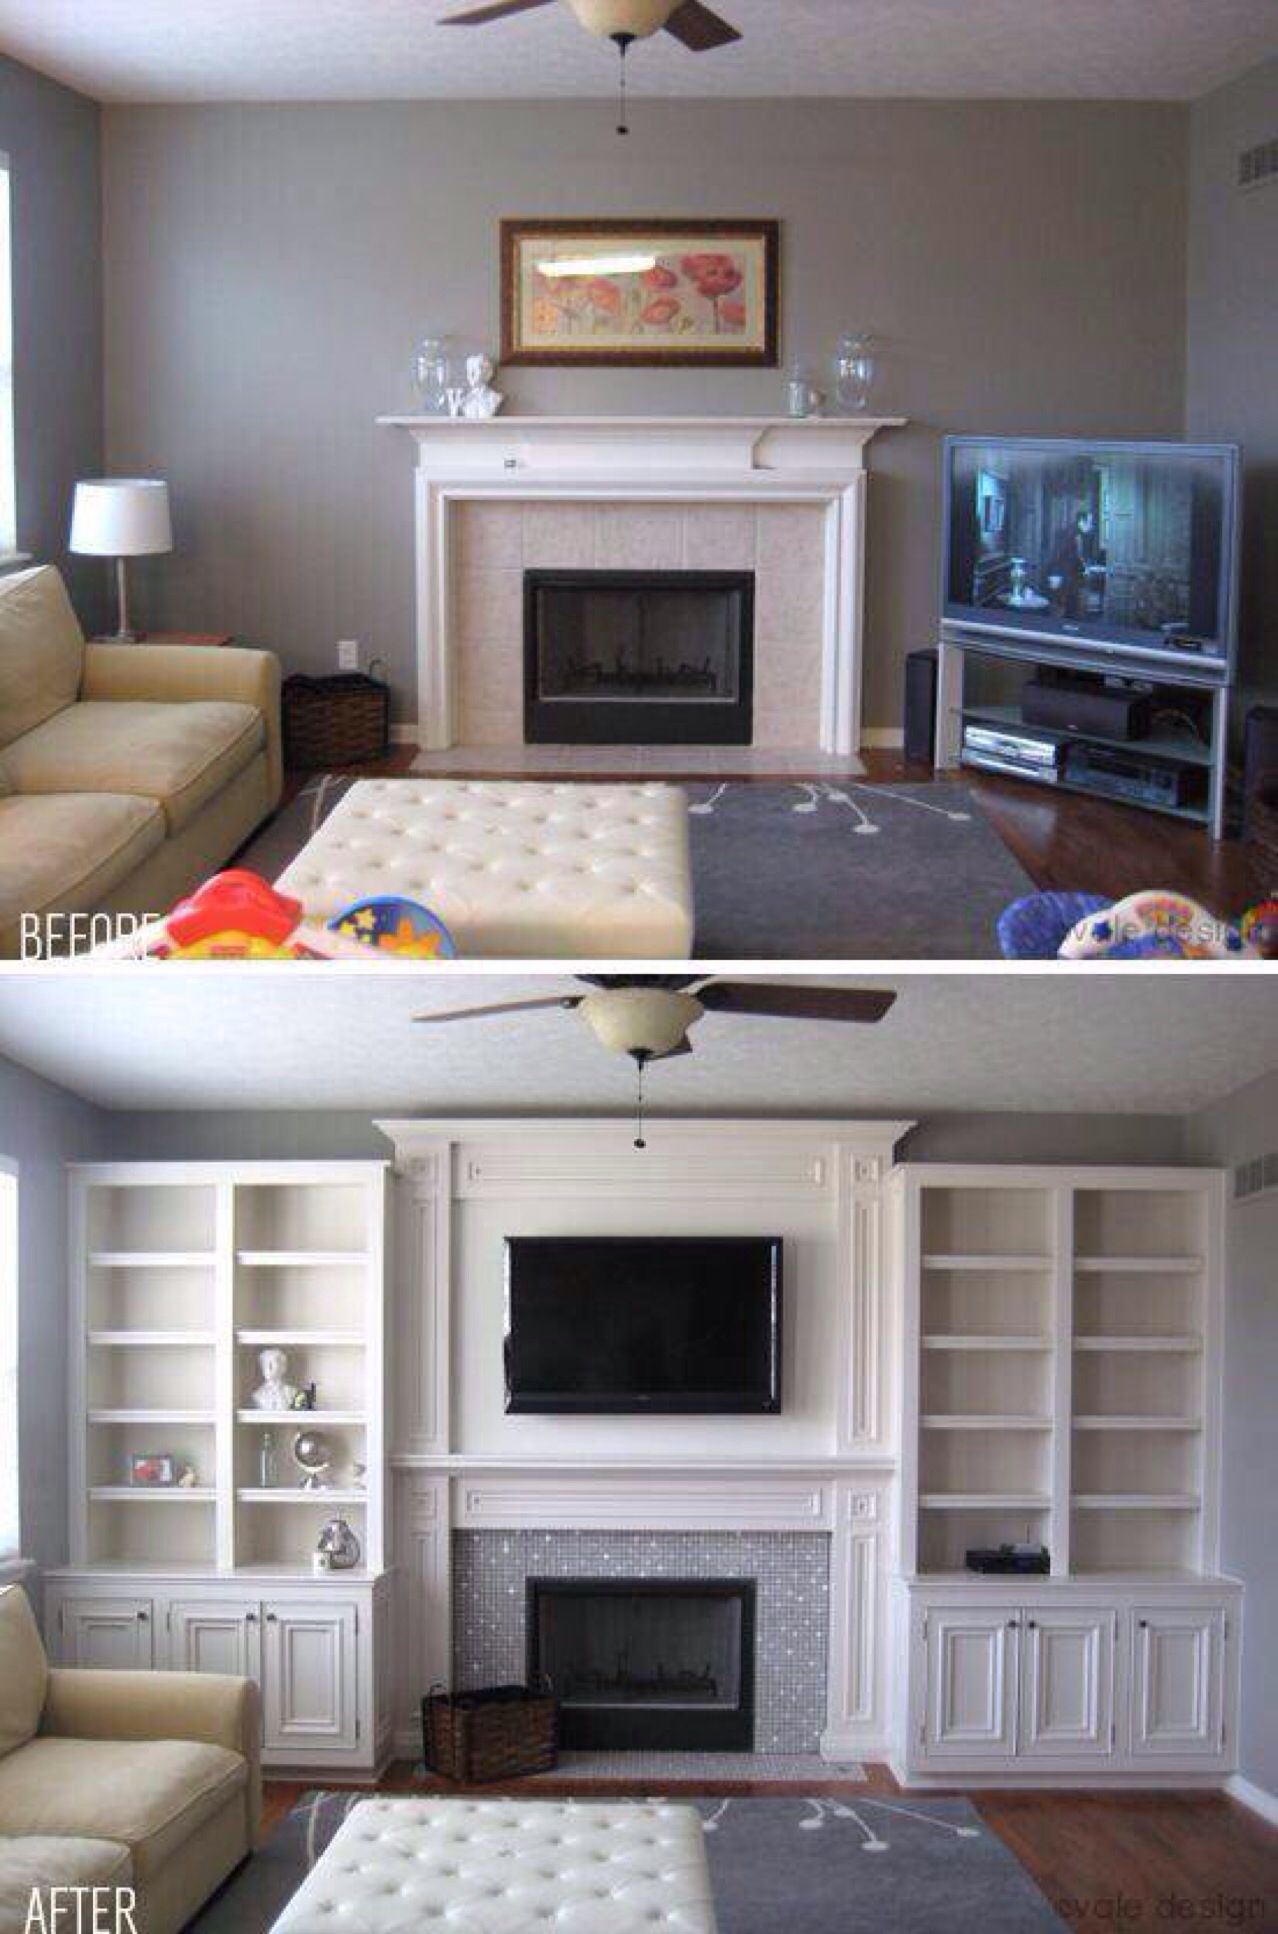 Living Room Make Over Before And After  Future Home  Pinterest Amazing Living Room Make Over Design Inspiration